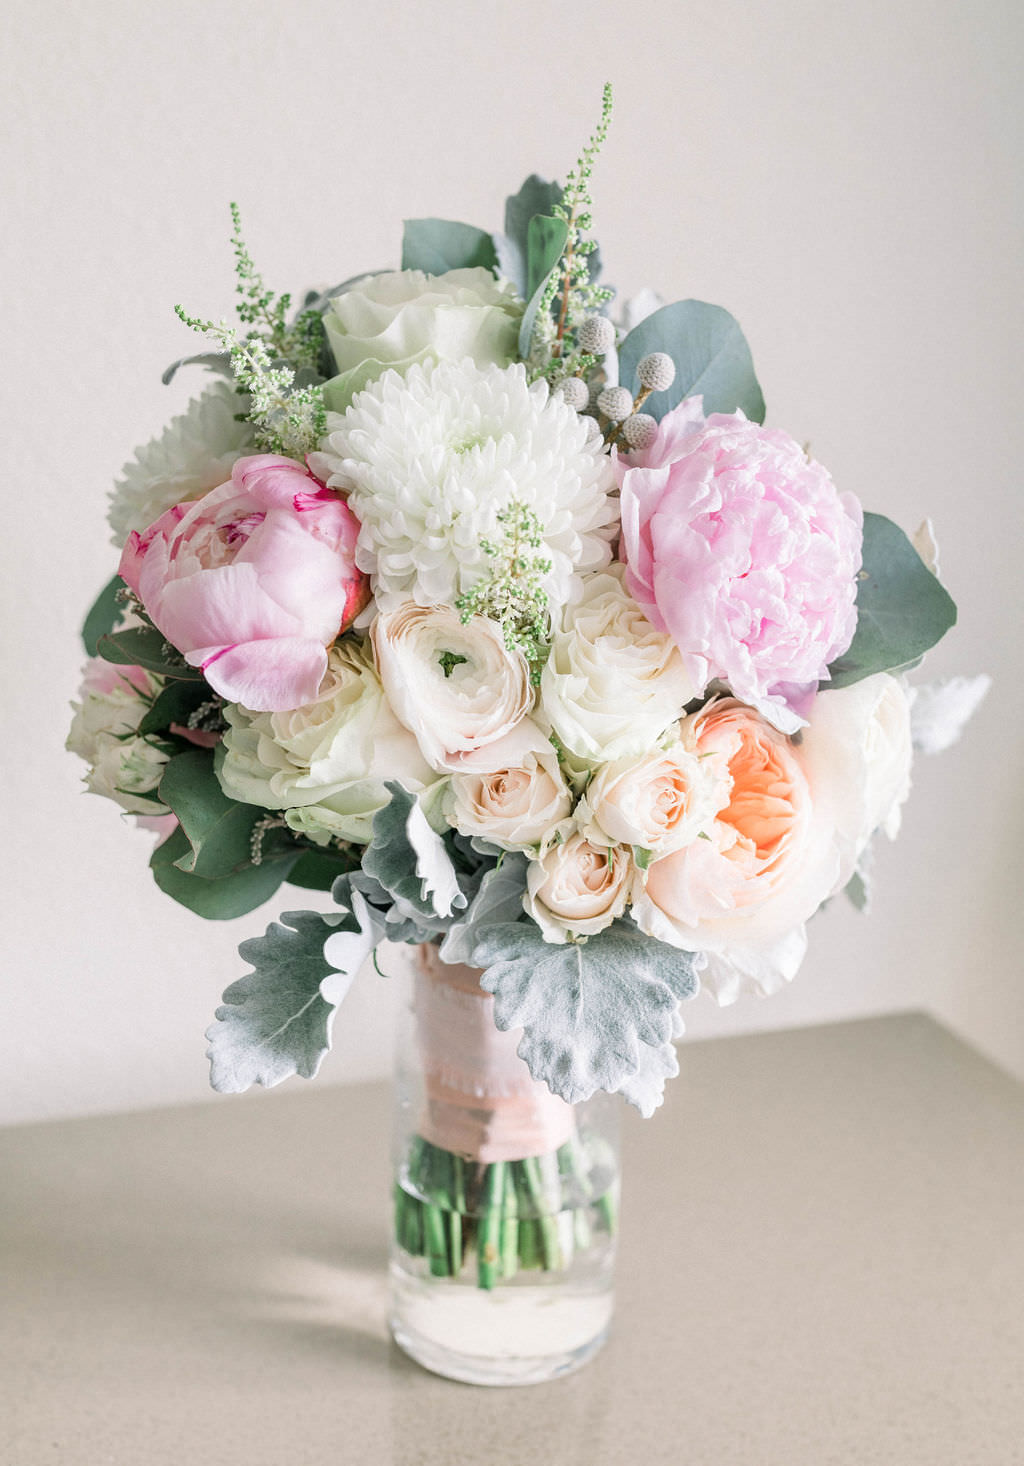 Rustic Elegant Bridal Floral Bouquet Pink Peonies Coral Roses White Flowers Silver Dollar Eucalyptus Greenery And Dusty Miller Leaves Tampa Bay Wedding Planner Gulf Beach Weddings Marry Me Tampa Bay